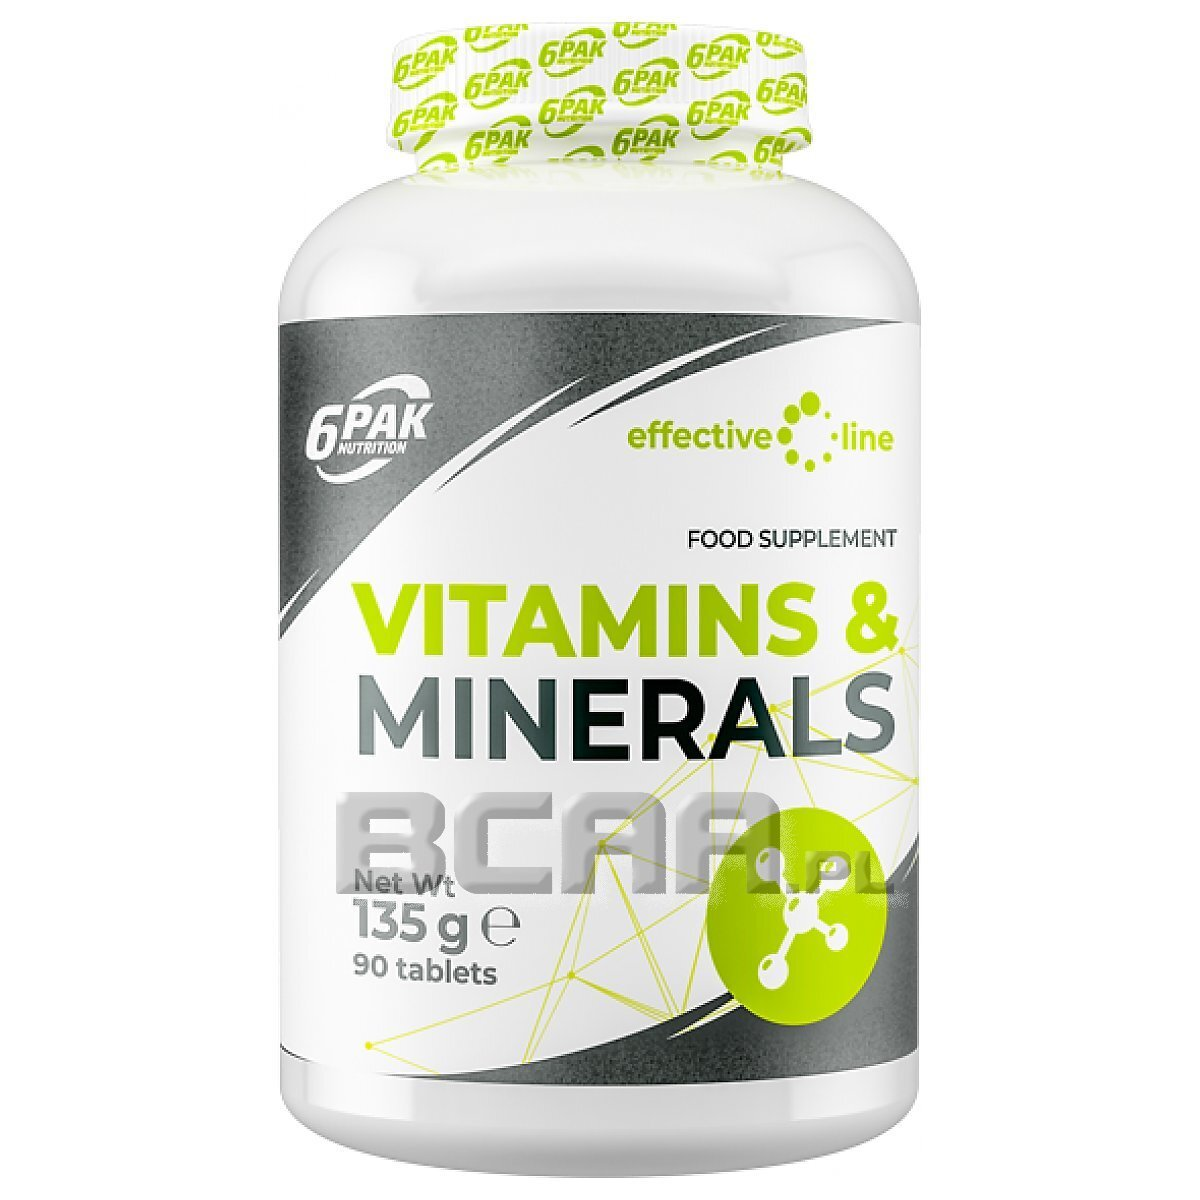 Effective Line Vitamins Amp Minerals 6pak Nutrition 90tab